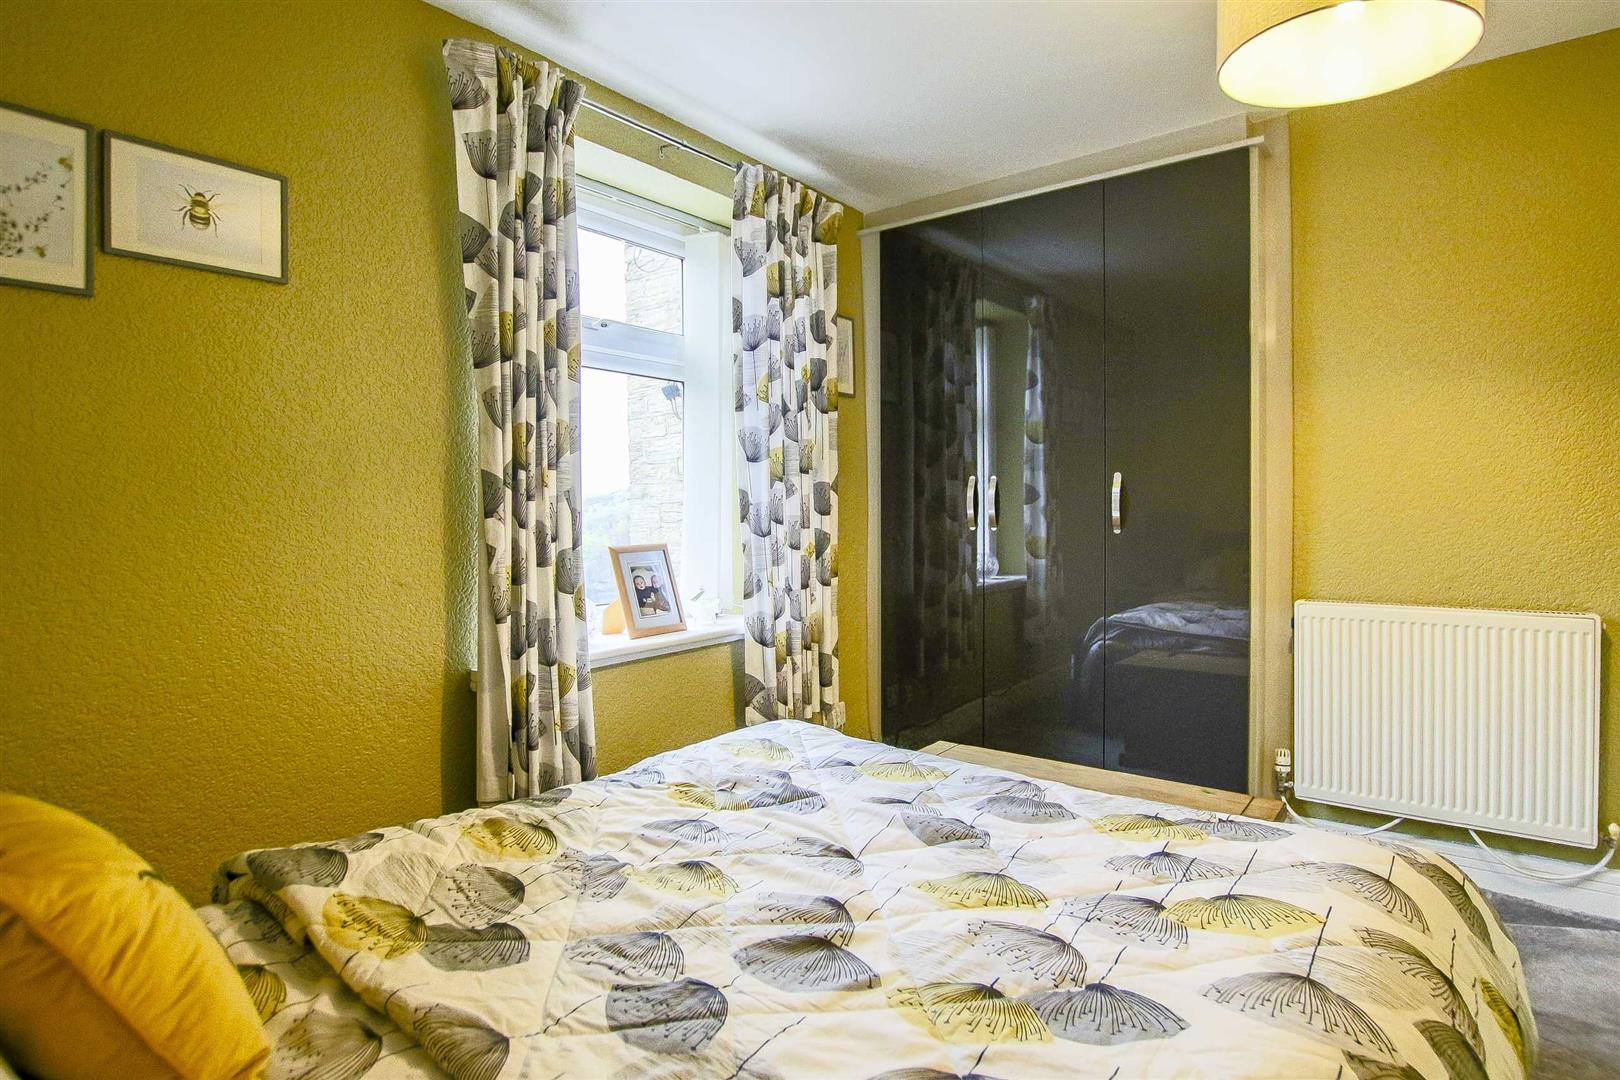 3 Bedroom Mid Terrace House For Sale - Image 14